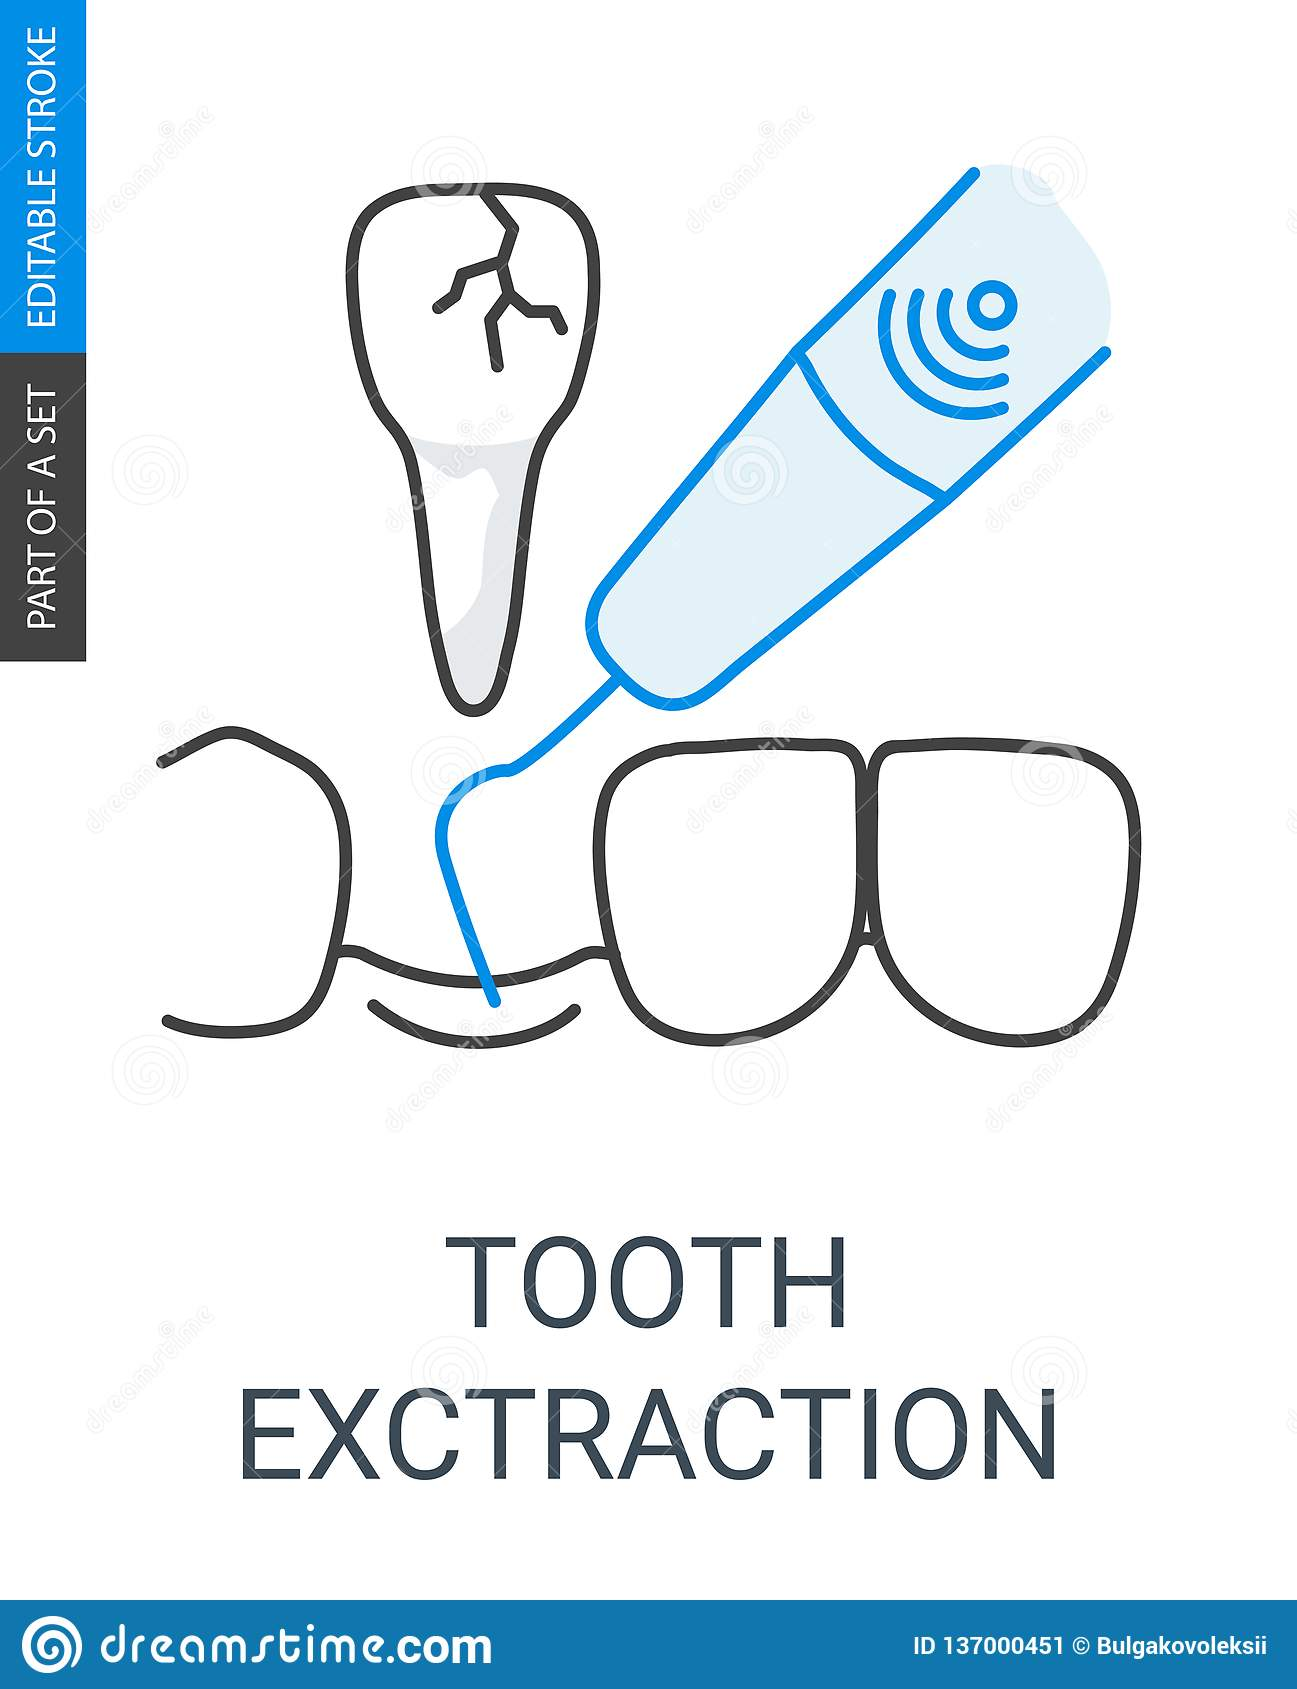 Tooth extraction icon  stock vector  Illustration of loss